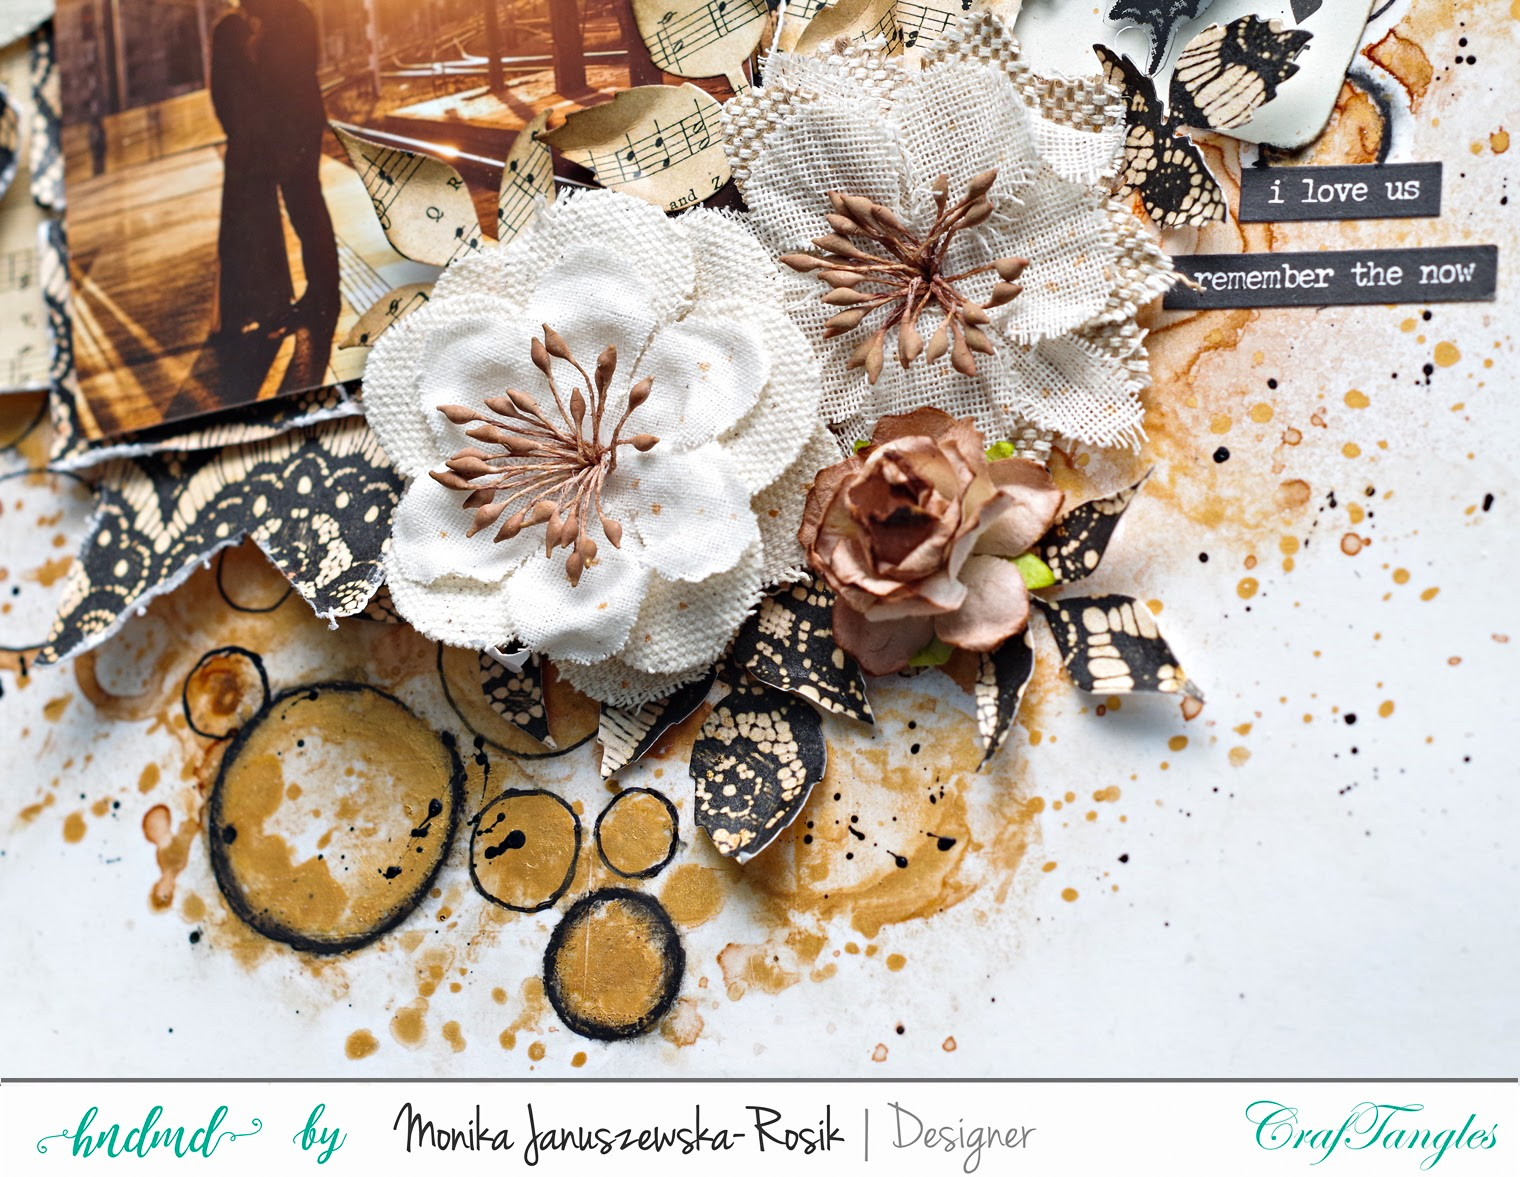 Mixed media Layout with CrafTangels stencils 3